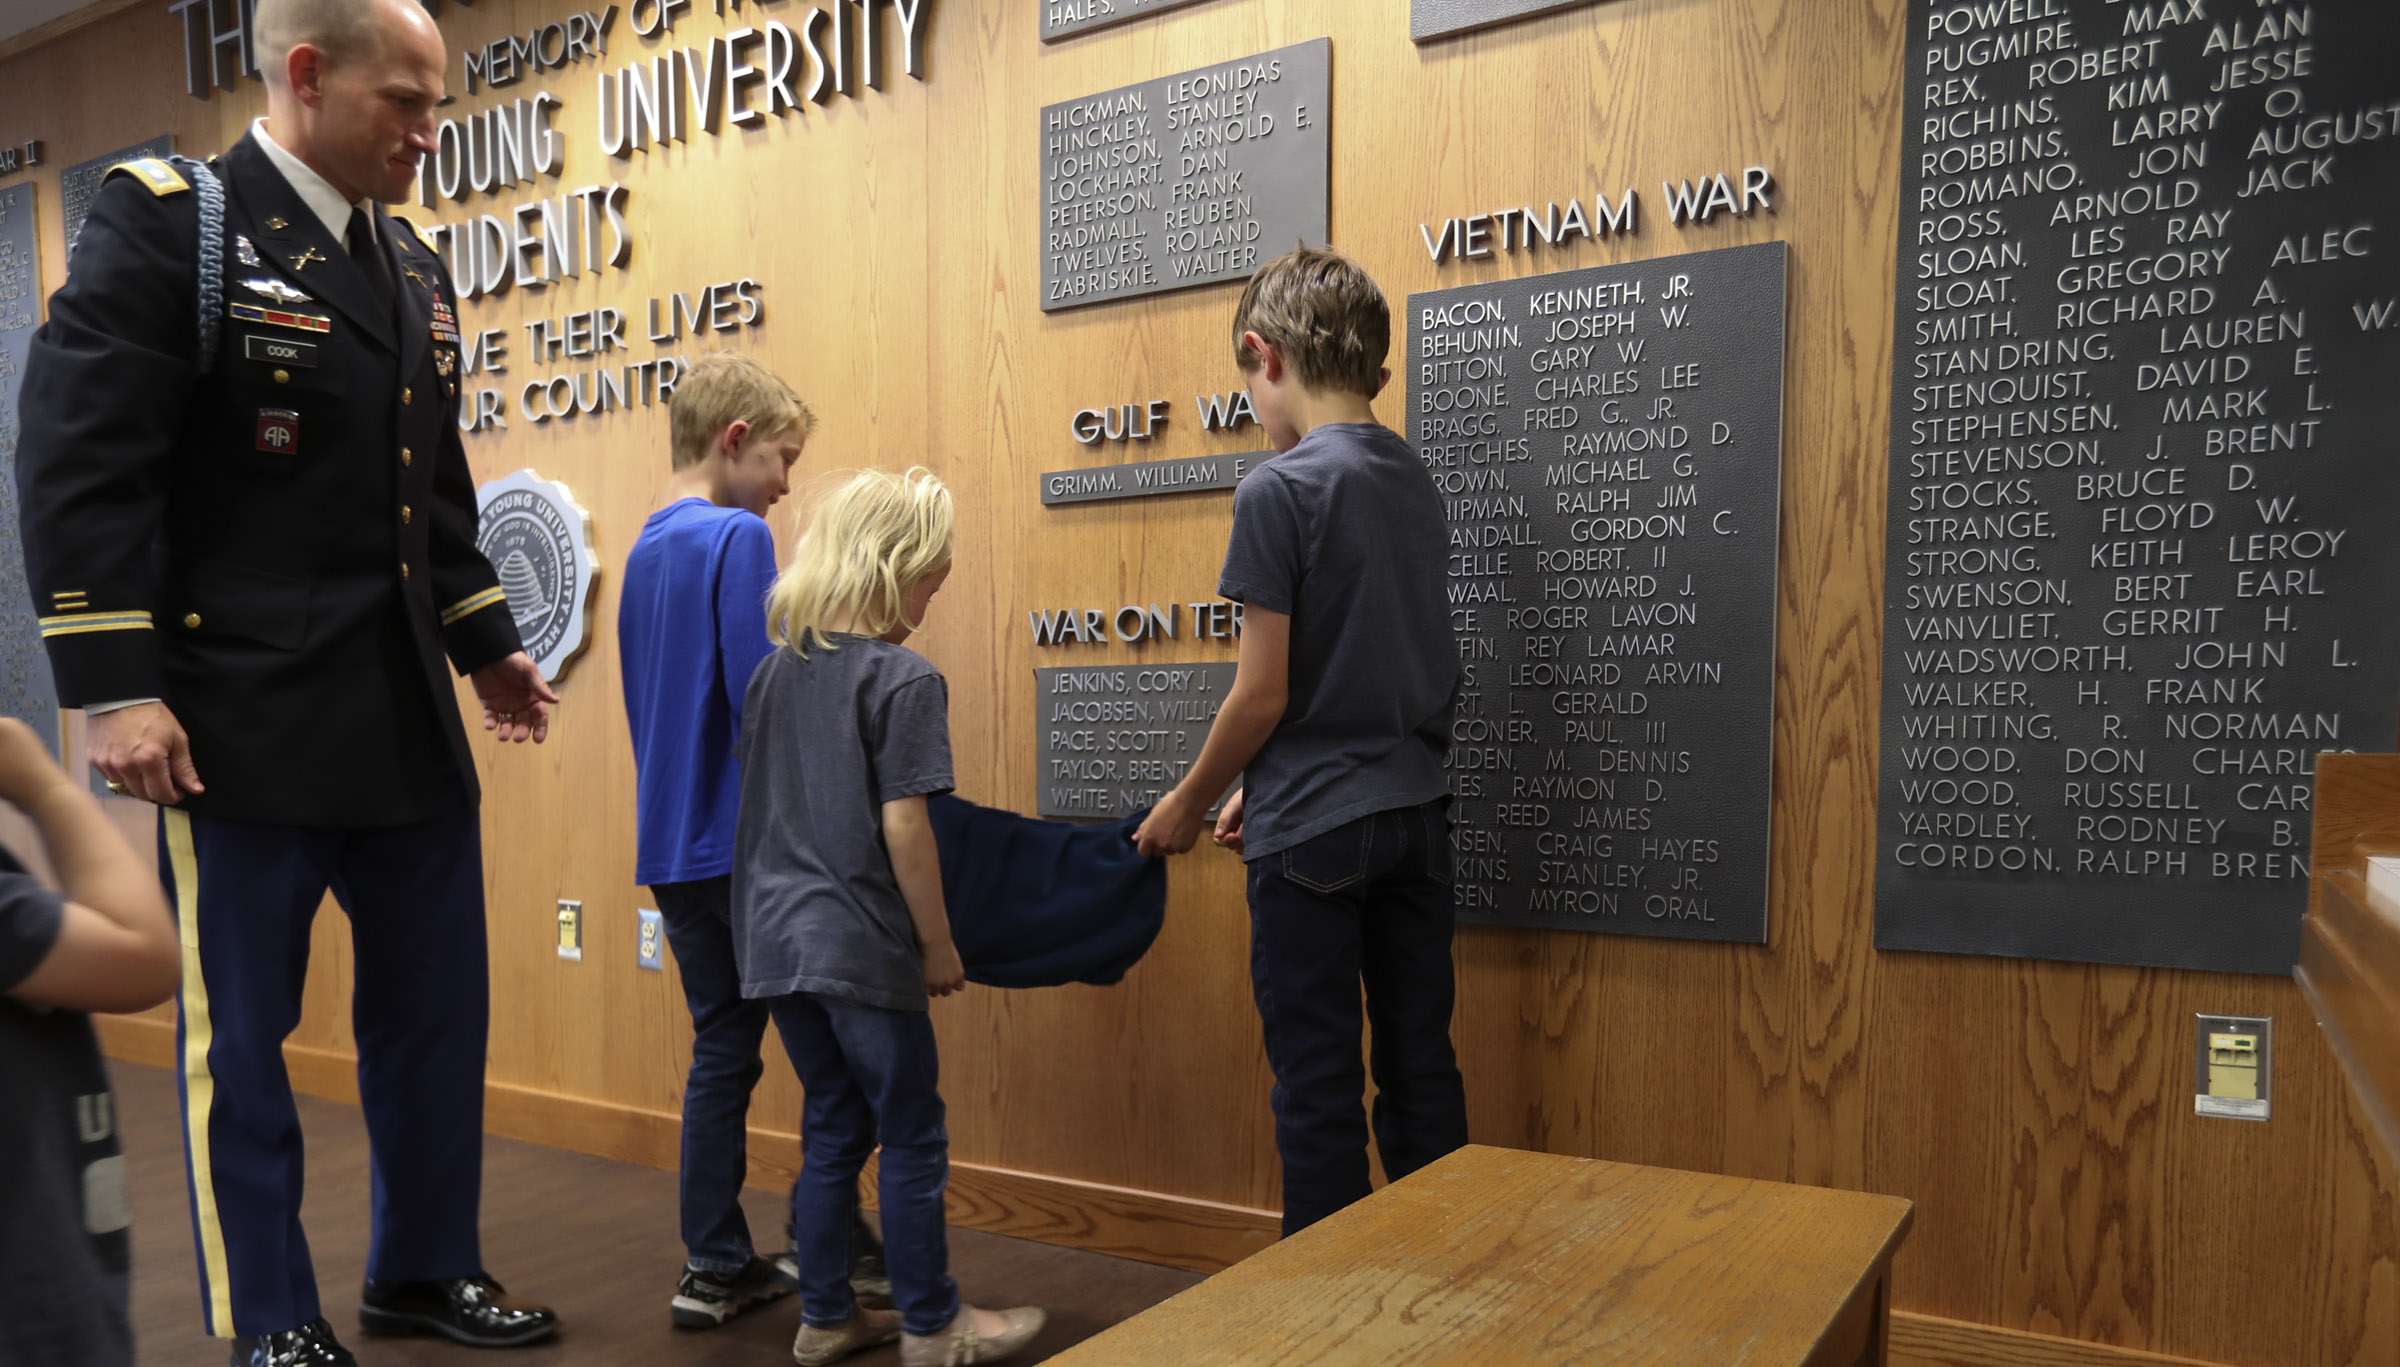 Three of Maj. Brent Taylor's children — Jacob, Eleanor and Alex — unveil a plaque containing his name on the Reflection Room Memorial Wall in the Wilkinson Center during a ceremony on the BYU campus in Provo on Thursday, May 23, 2019. Taylor was killed in Afghanistan in 2018.